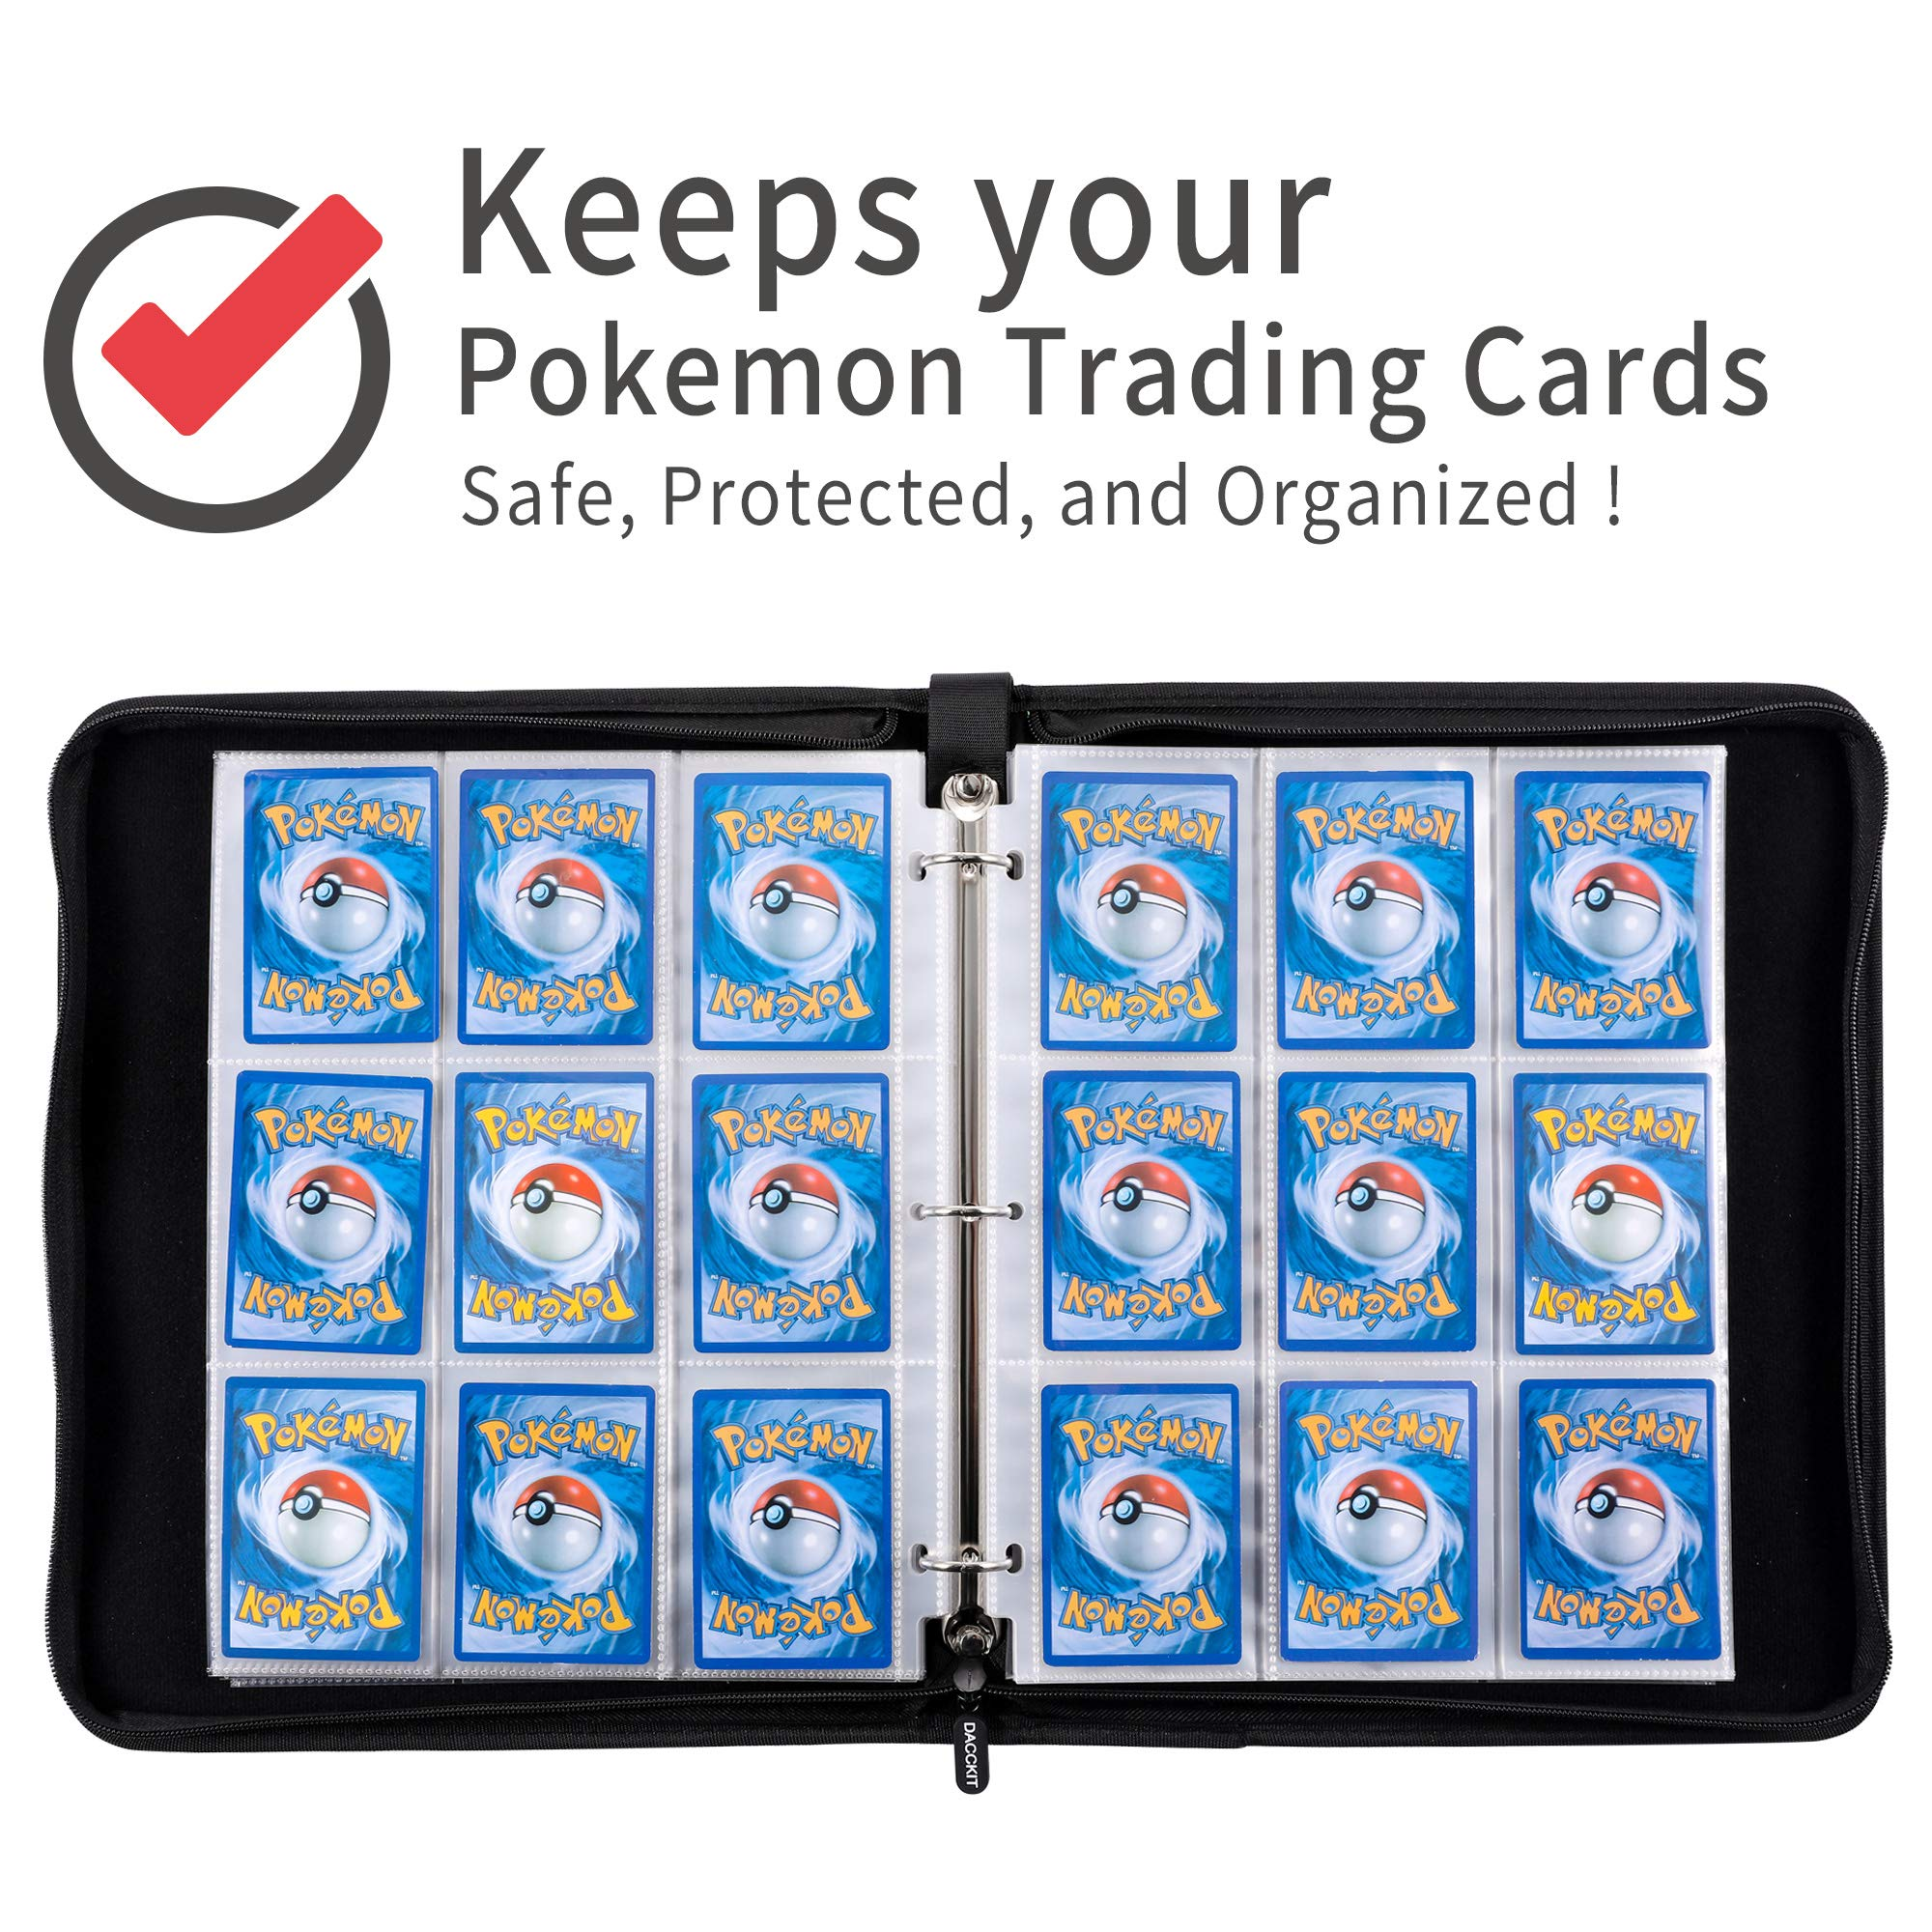 D DACCKIT Carrying Case Compatible with Pokemon Trading Cards, Cards Collectors Album with 30 Premium 9-Pocket Pages, Holds Up to 540 Cards by D DACCKIT (Image #5)